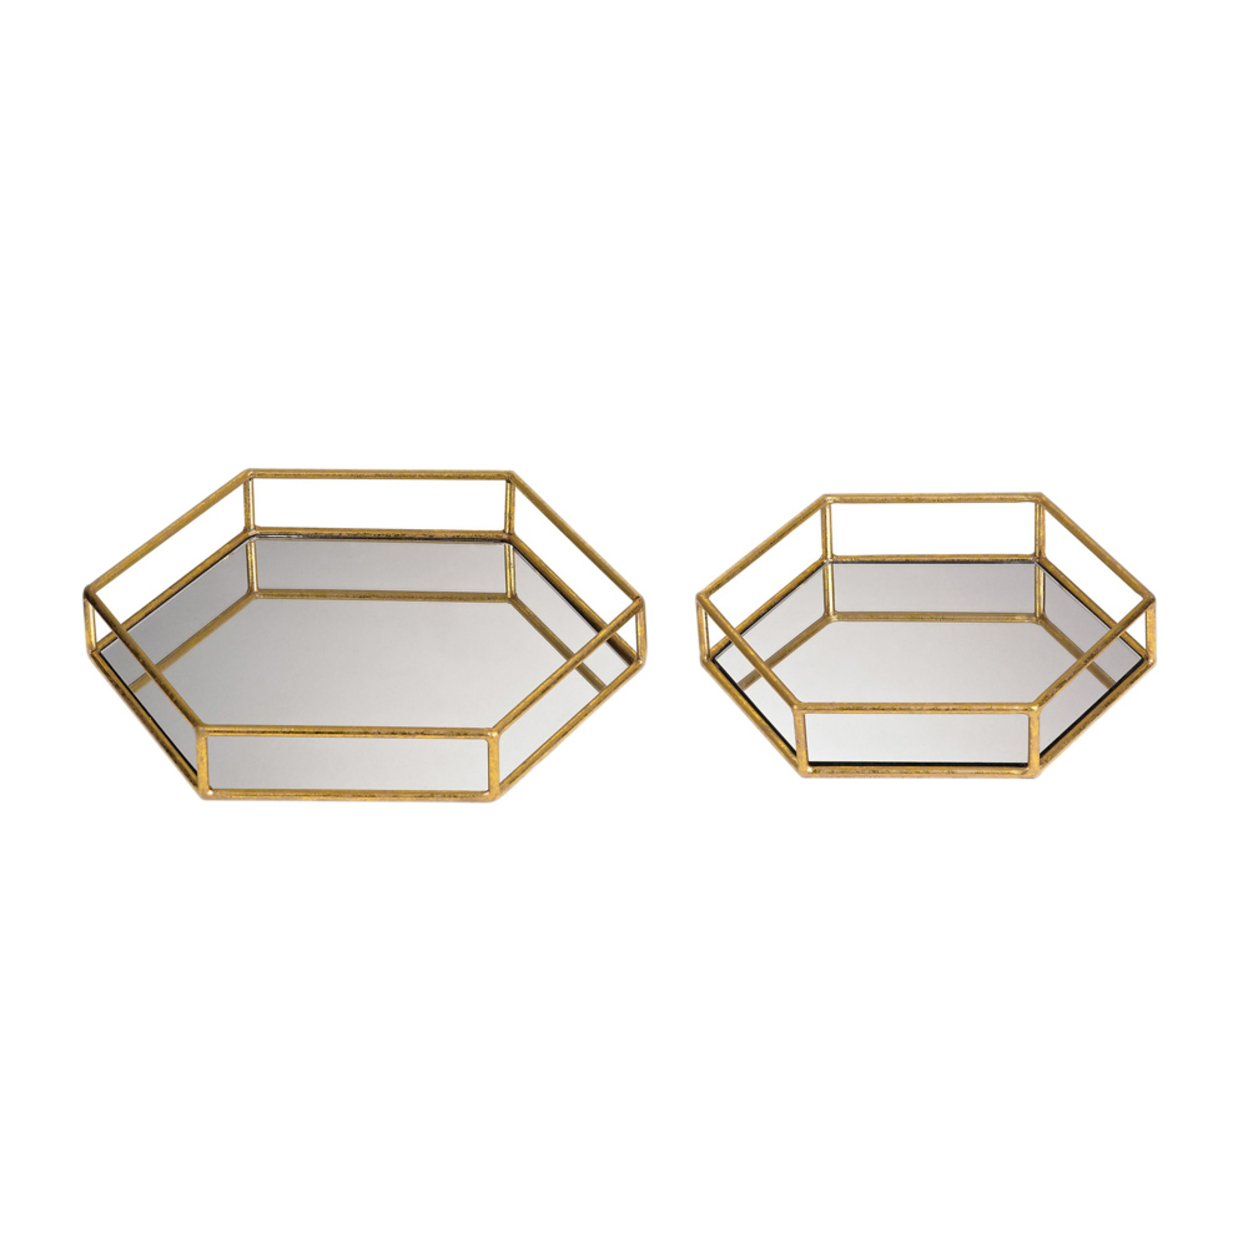 Sterling Set Of 2 Mirrored Hexagonal Trays - Gold 58de20982a00e47e7416c8e9